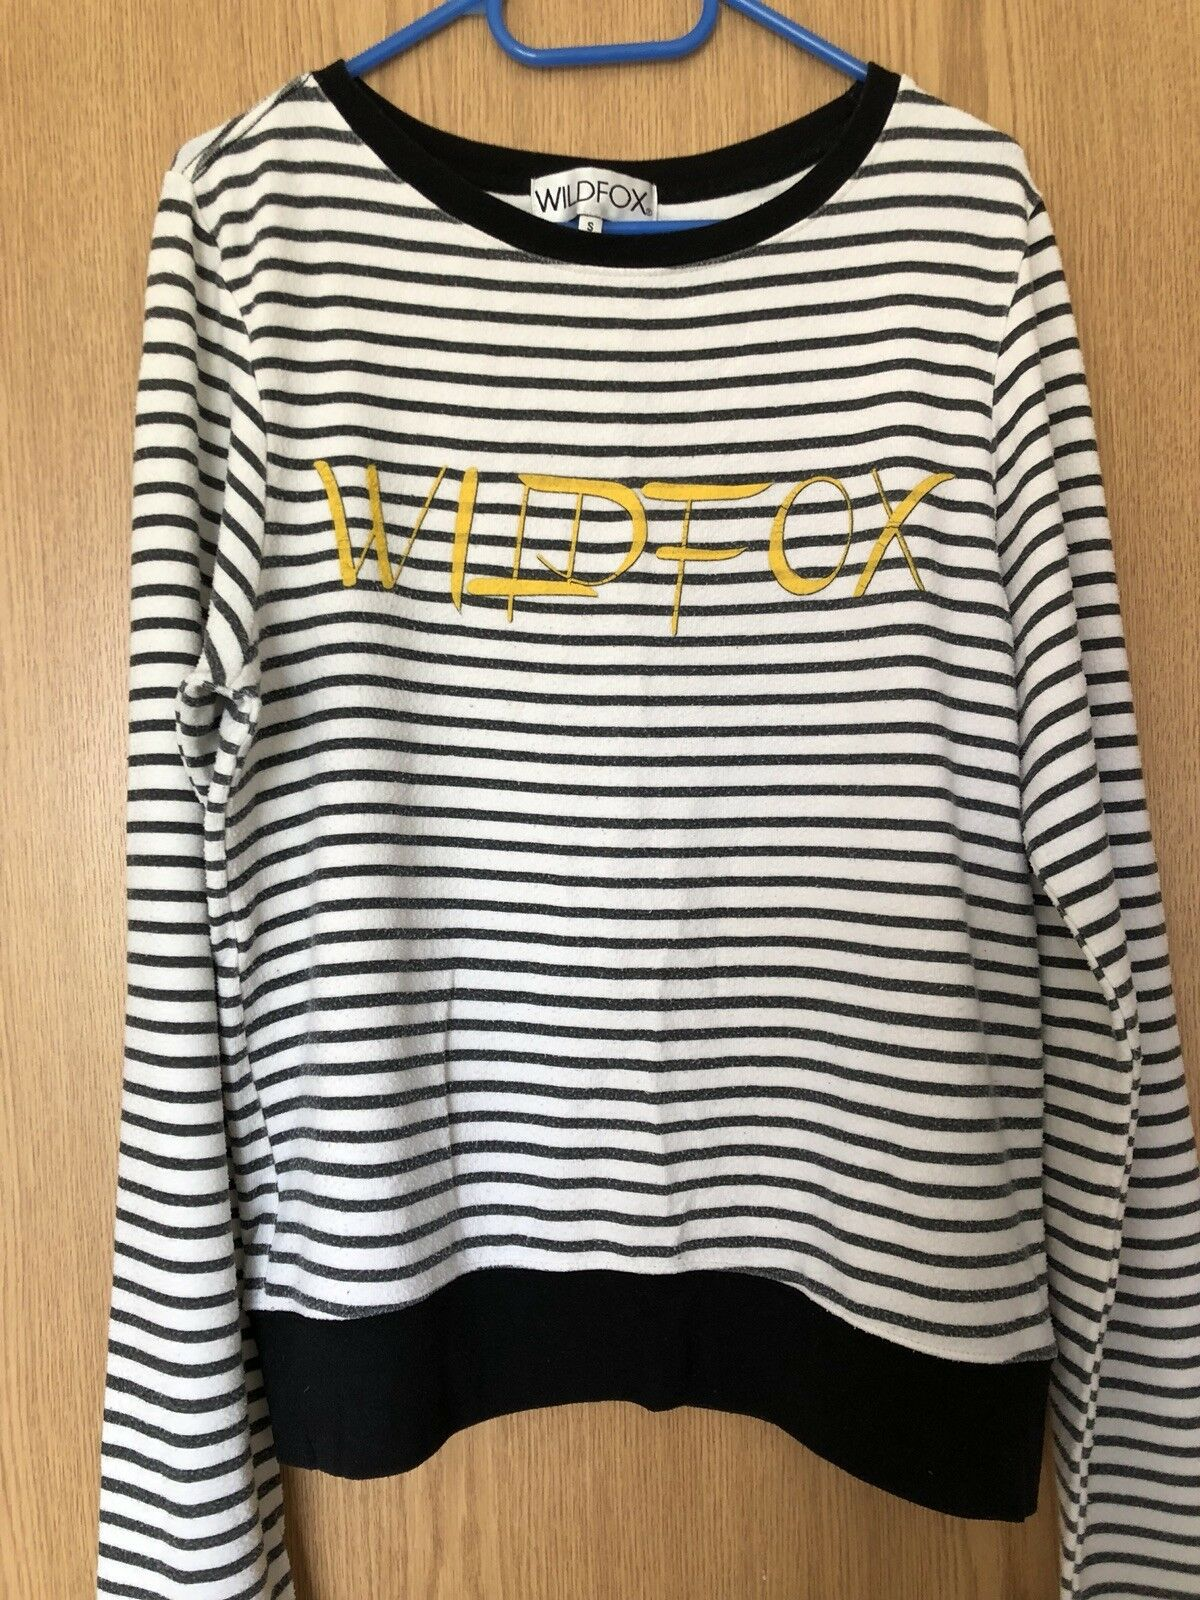 WILDFOX Women's Stripe Sweatshirt Top Size S Small